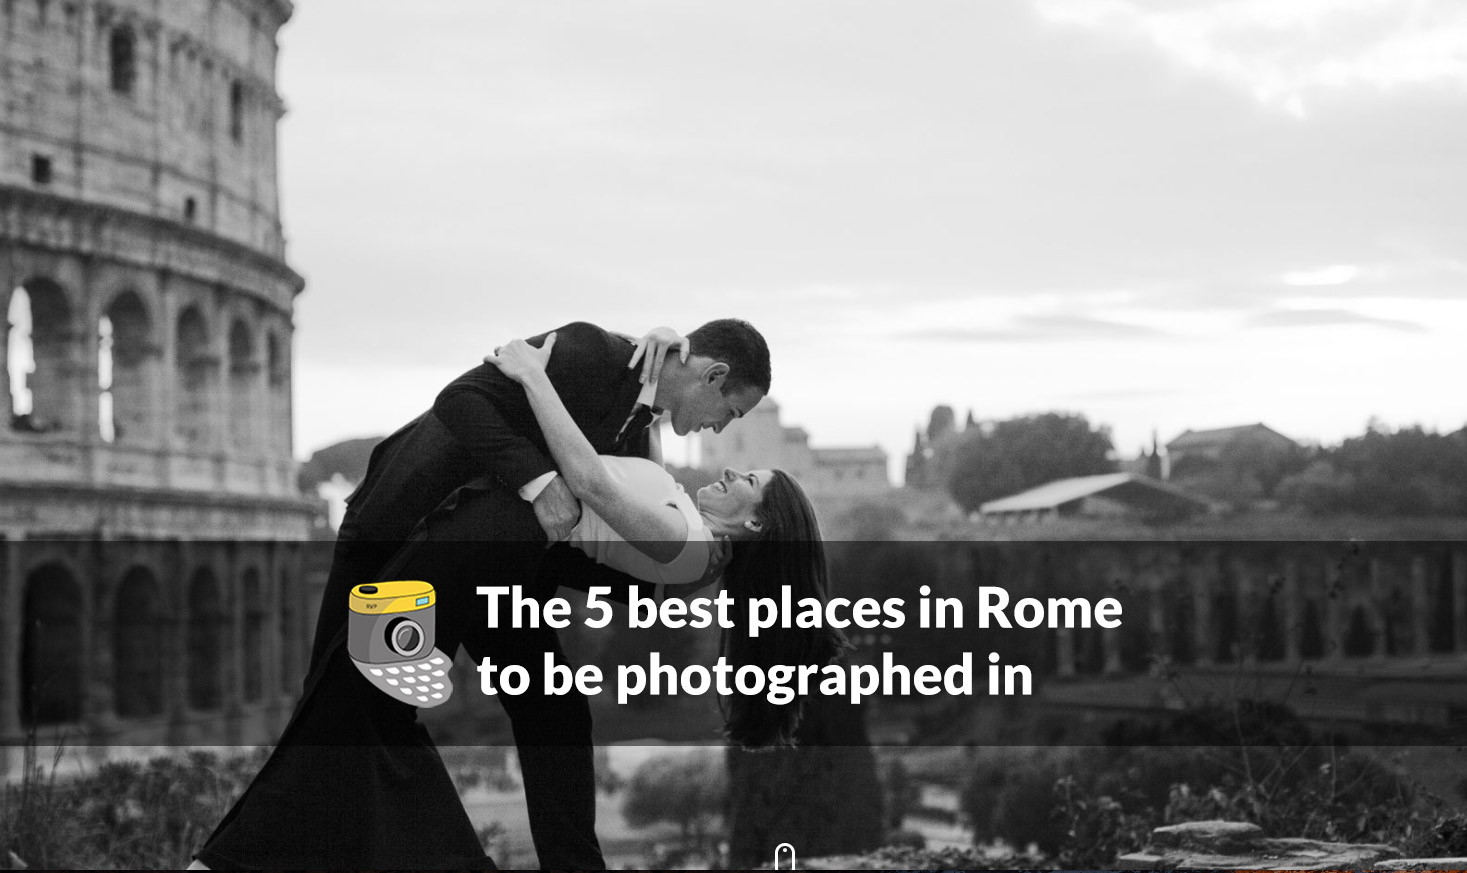 The 5 best places in Rome to be photographed in